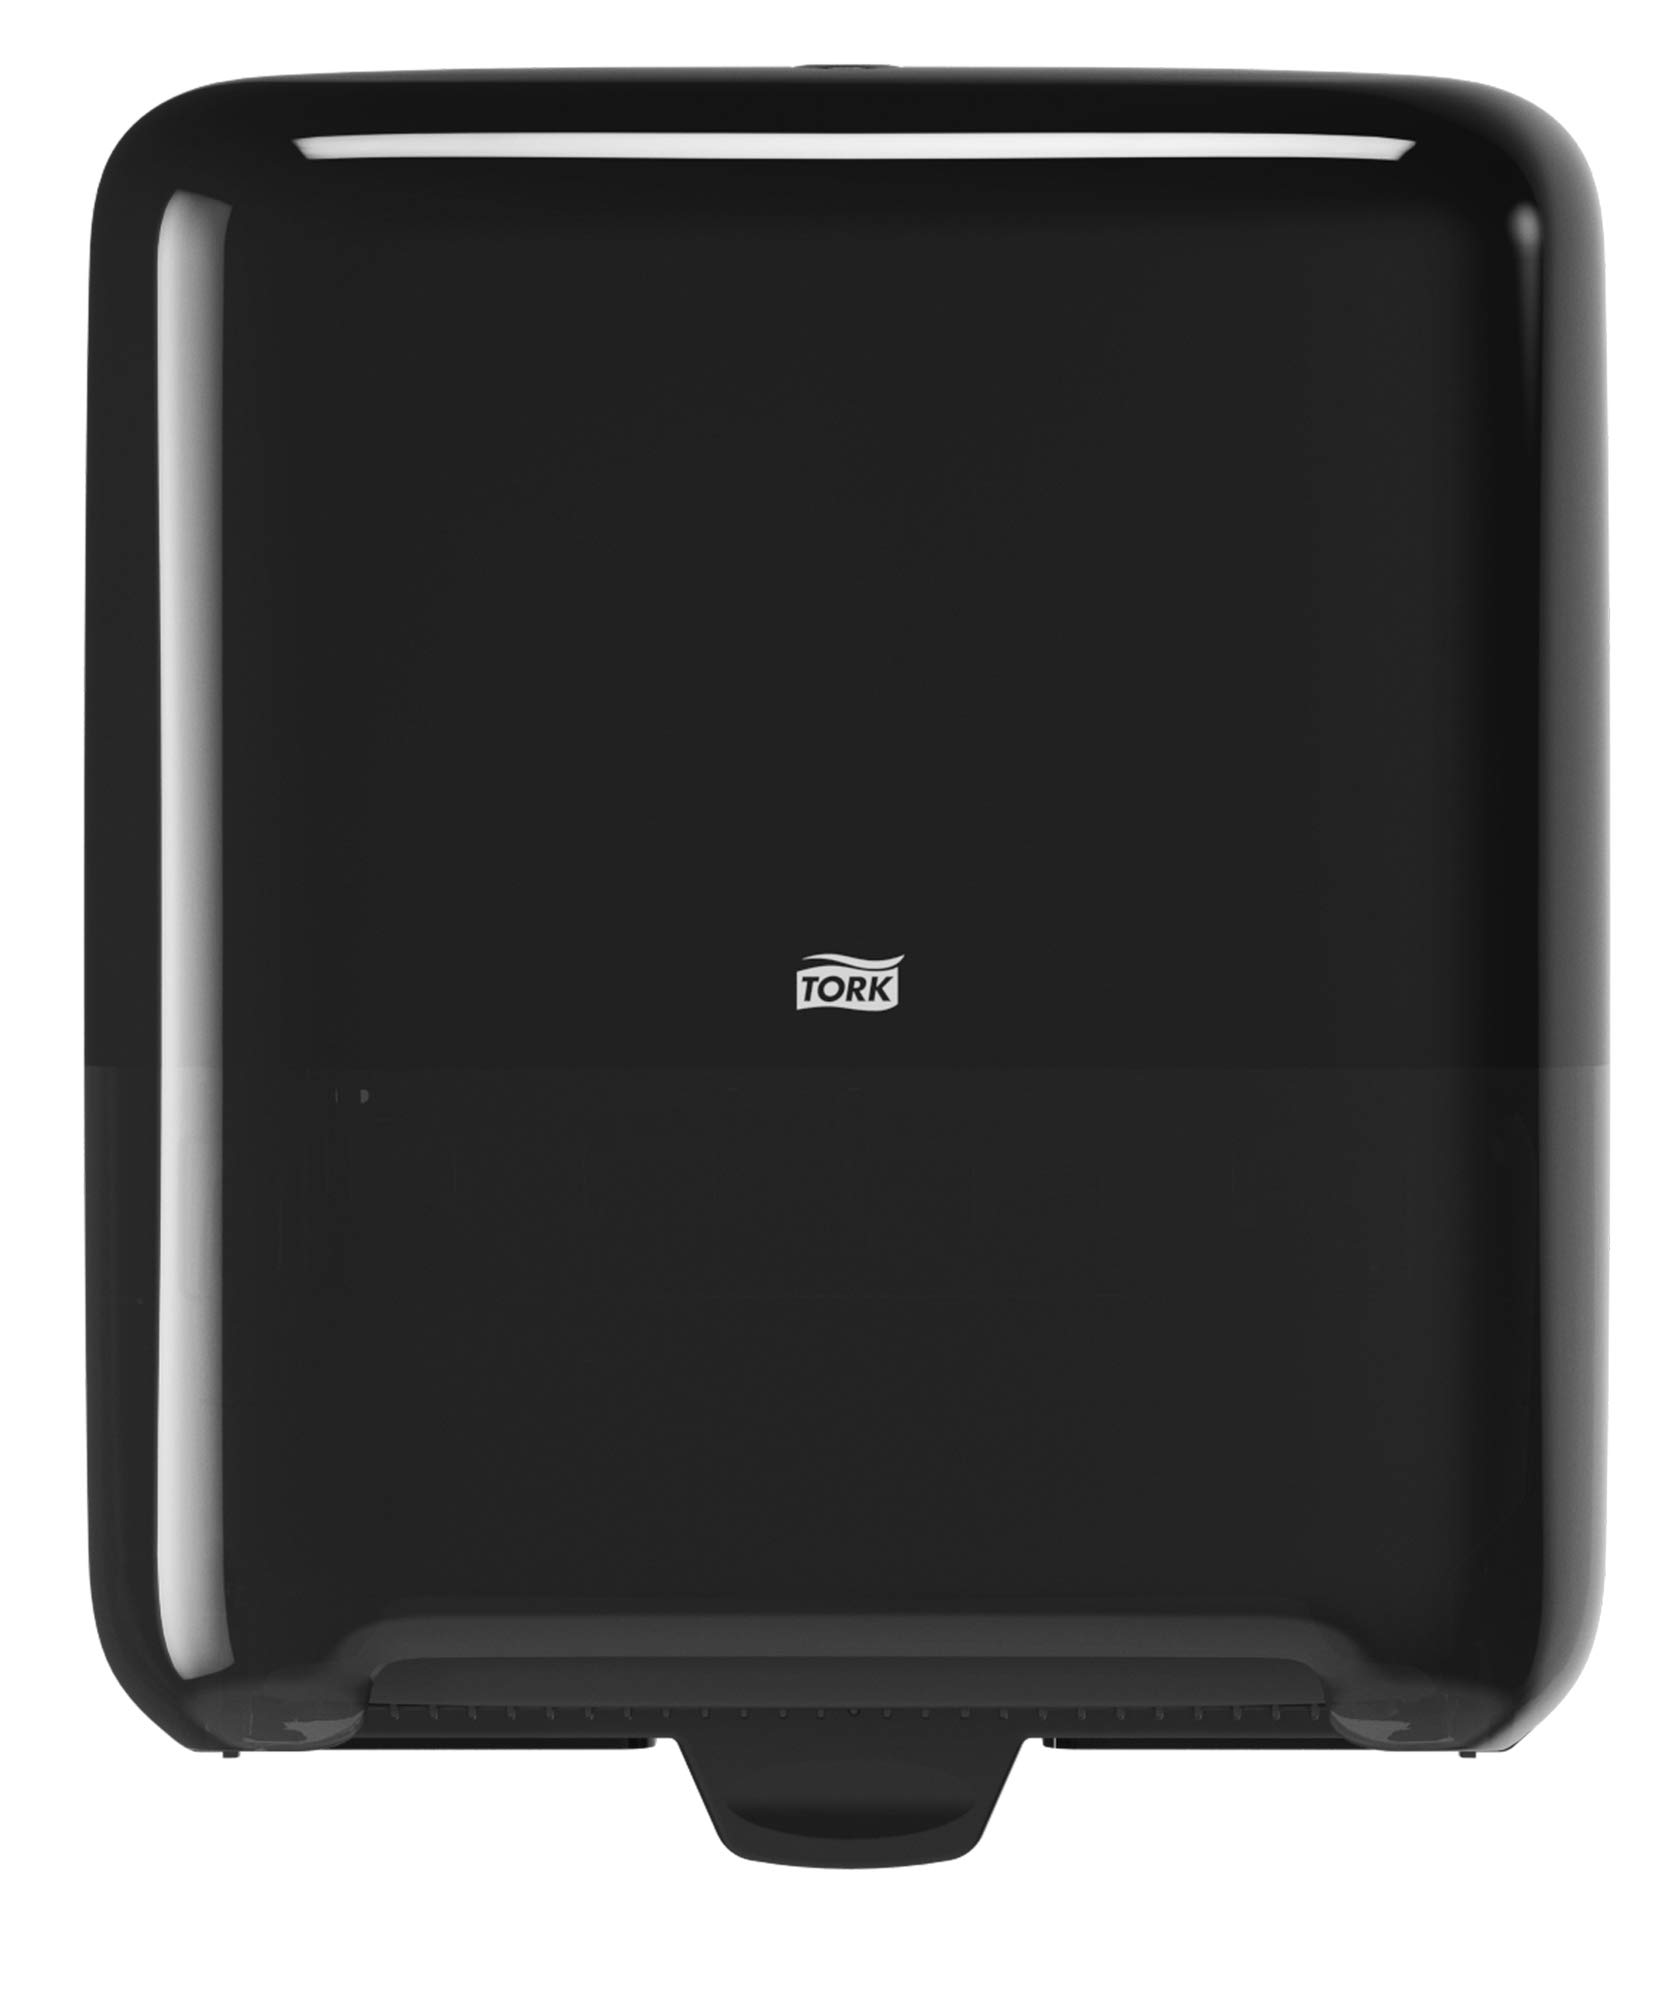 Tork 5510282 Elevation Matic Paper Hand Towel Roll Dispenser, 14.65'' Height x 13.2'' Width x 8.1'' Depth, Black (Case of 1 Dispenser) by Tork (Image #1)